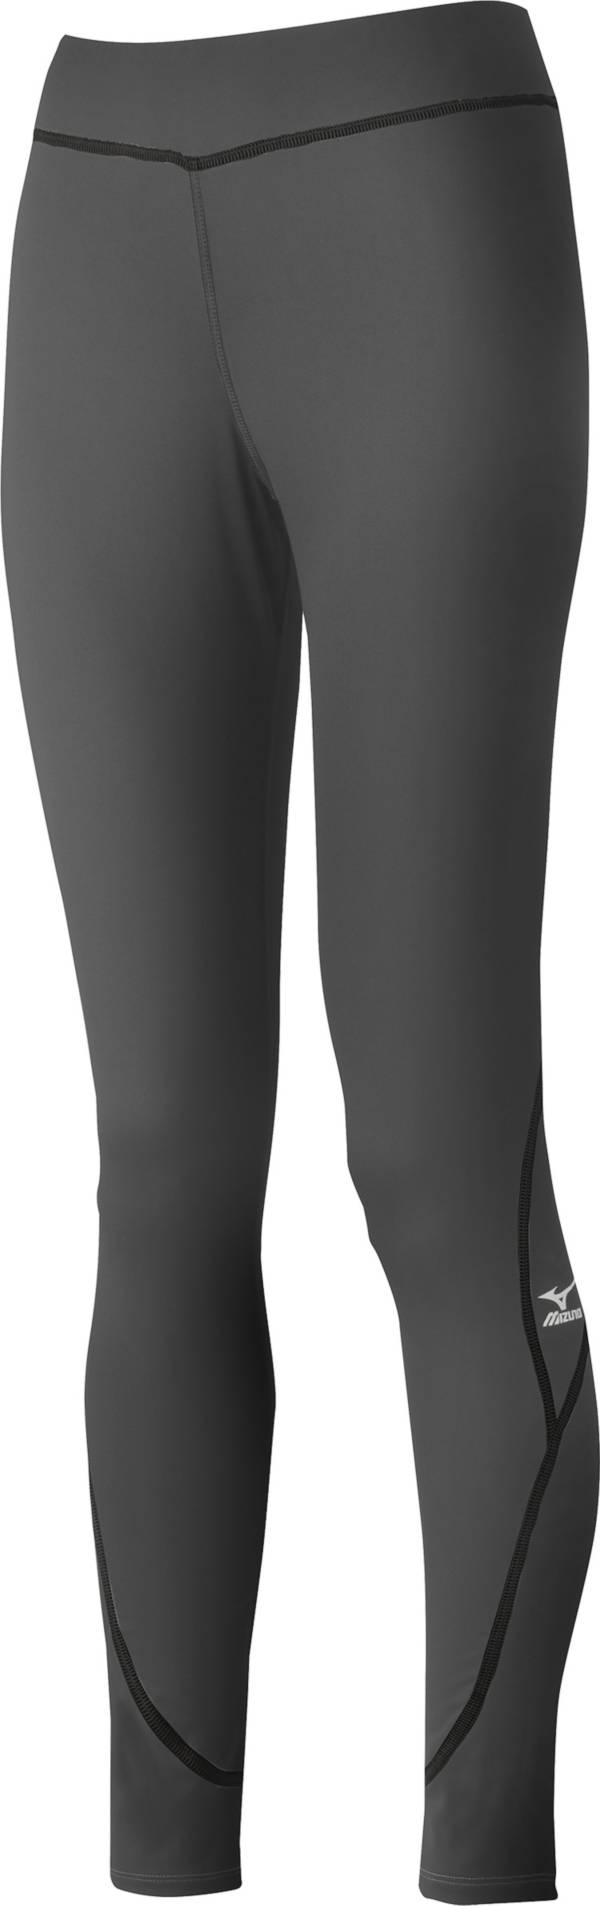 Mizuno Women's Beach Volleyball Omnis Tights product image